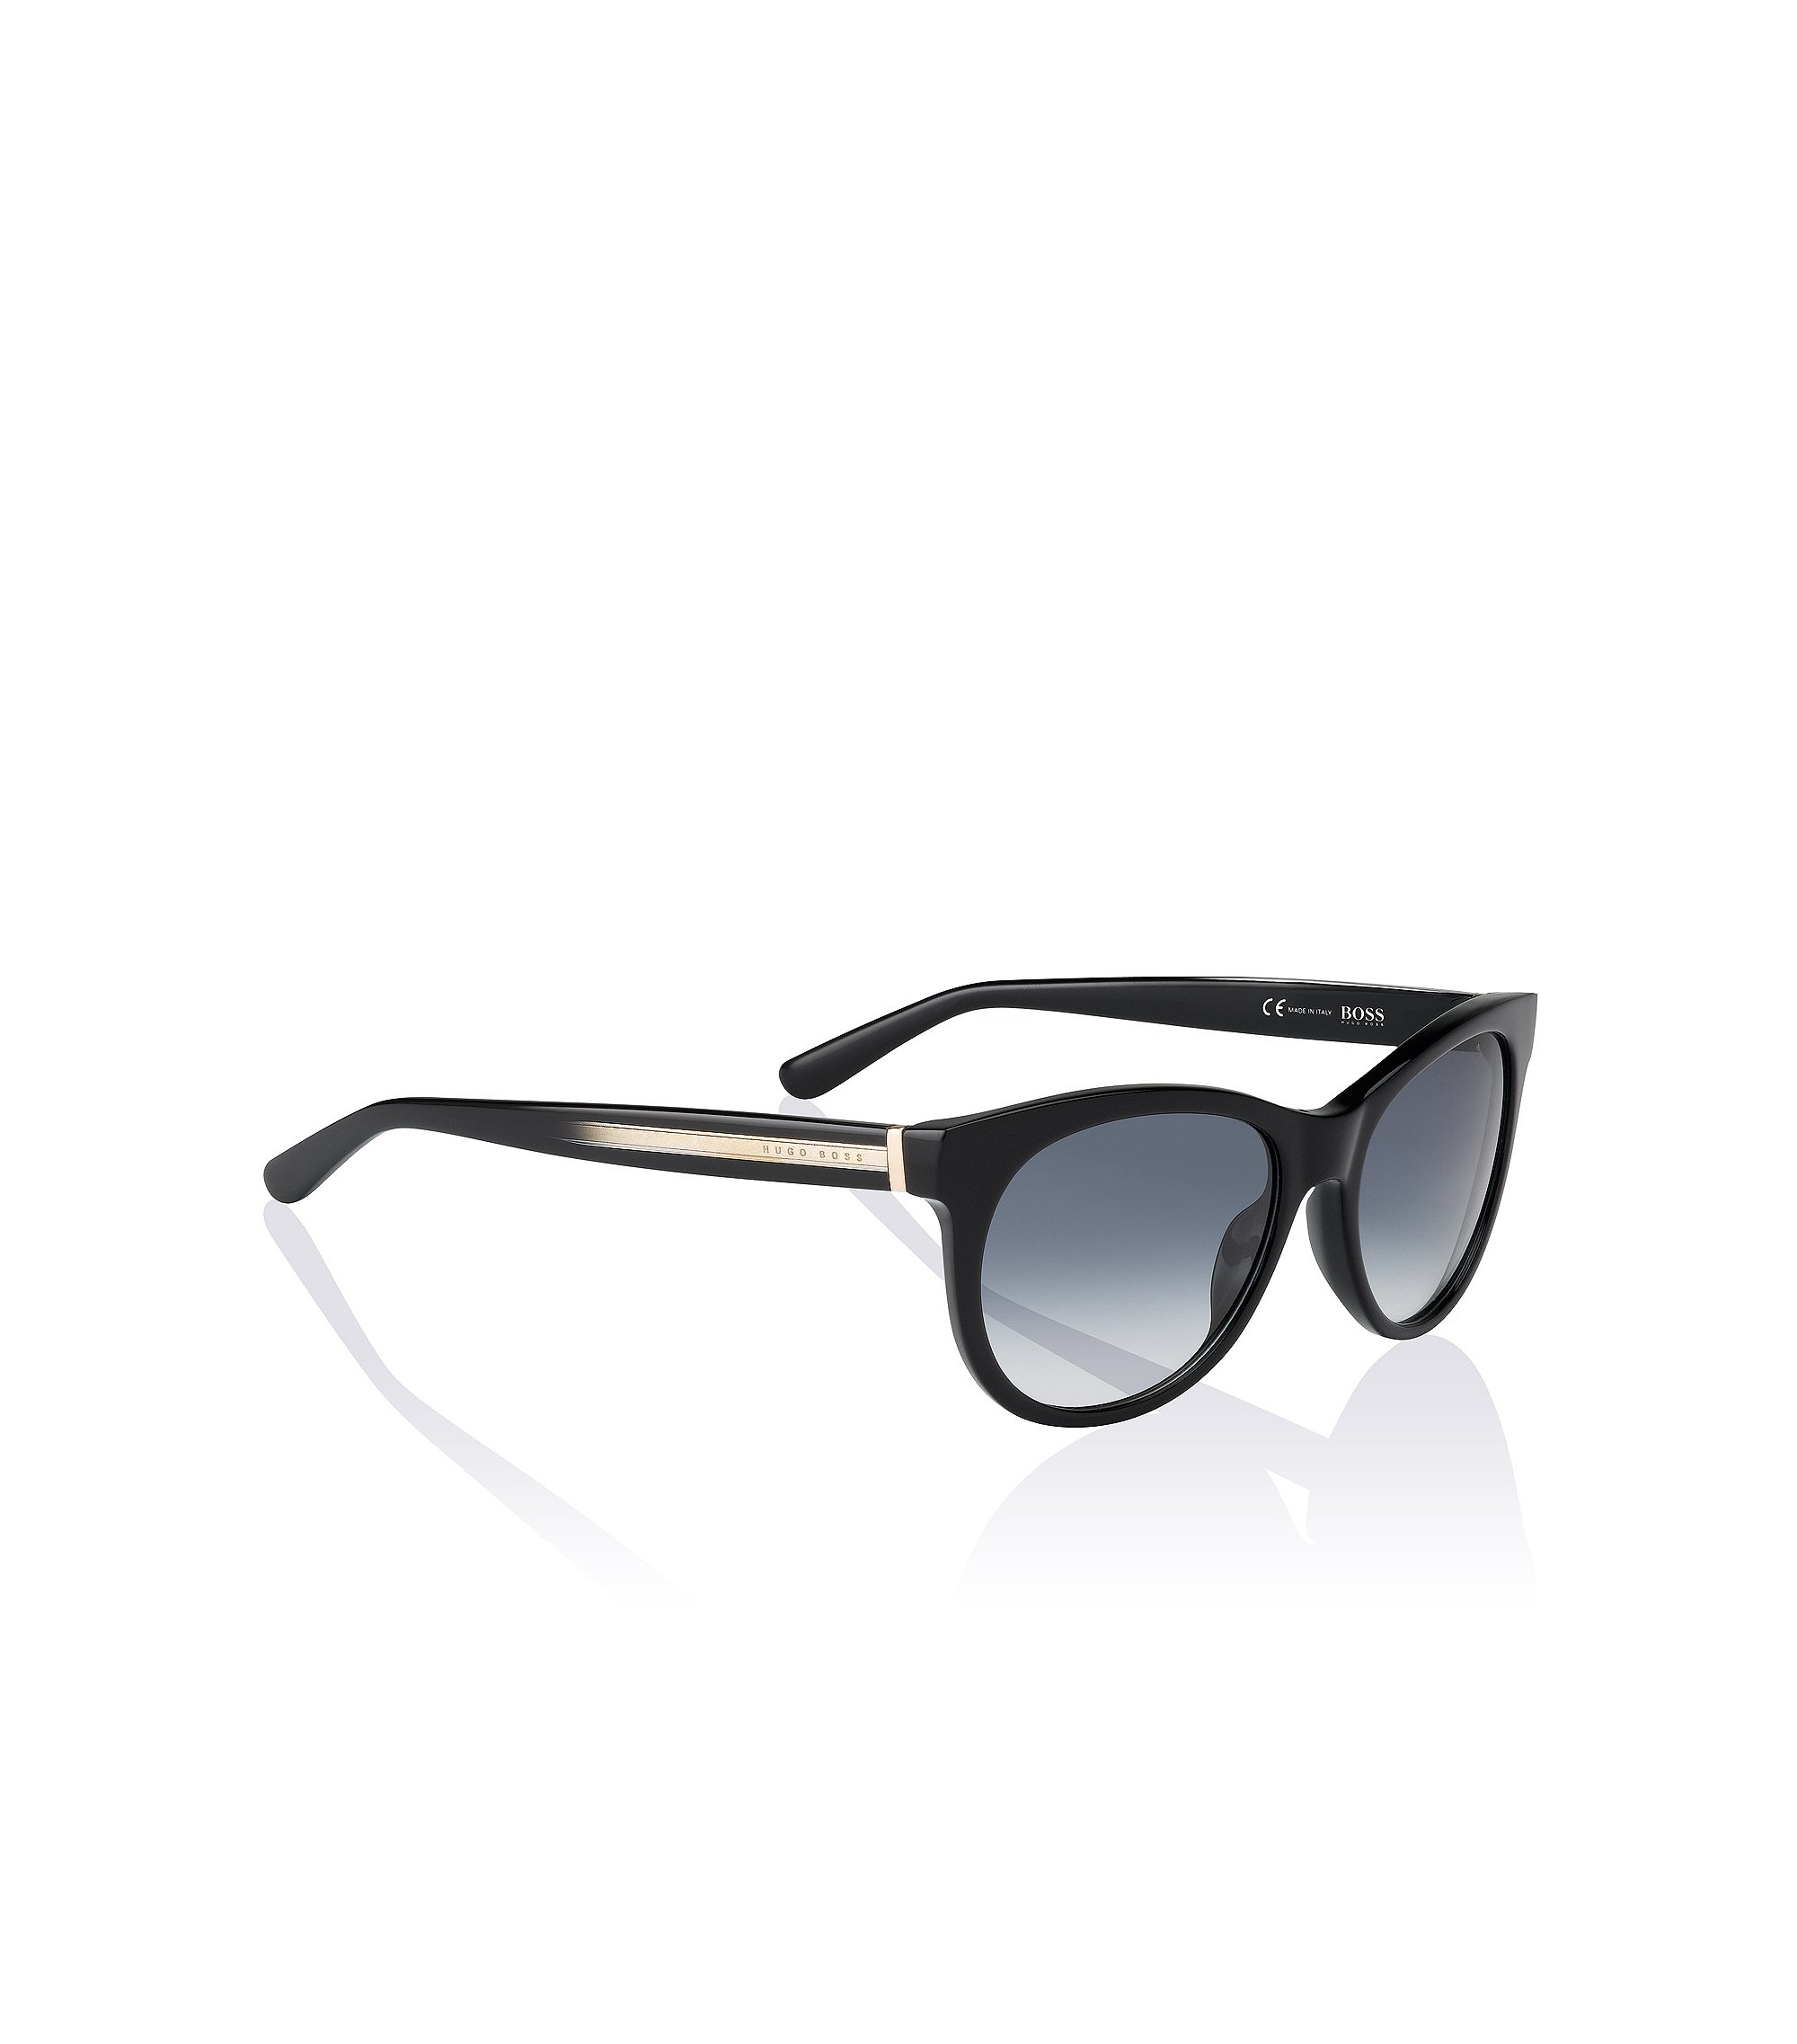 Cat-eye sunglasses 'BO 0611/S', Assorted-Pre-Pack